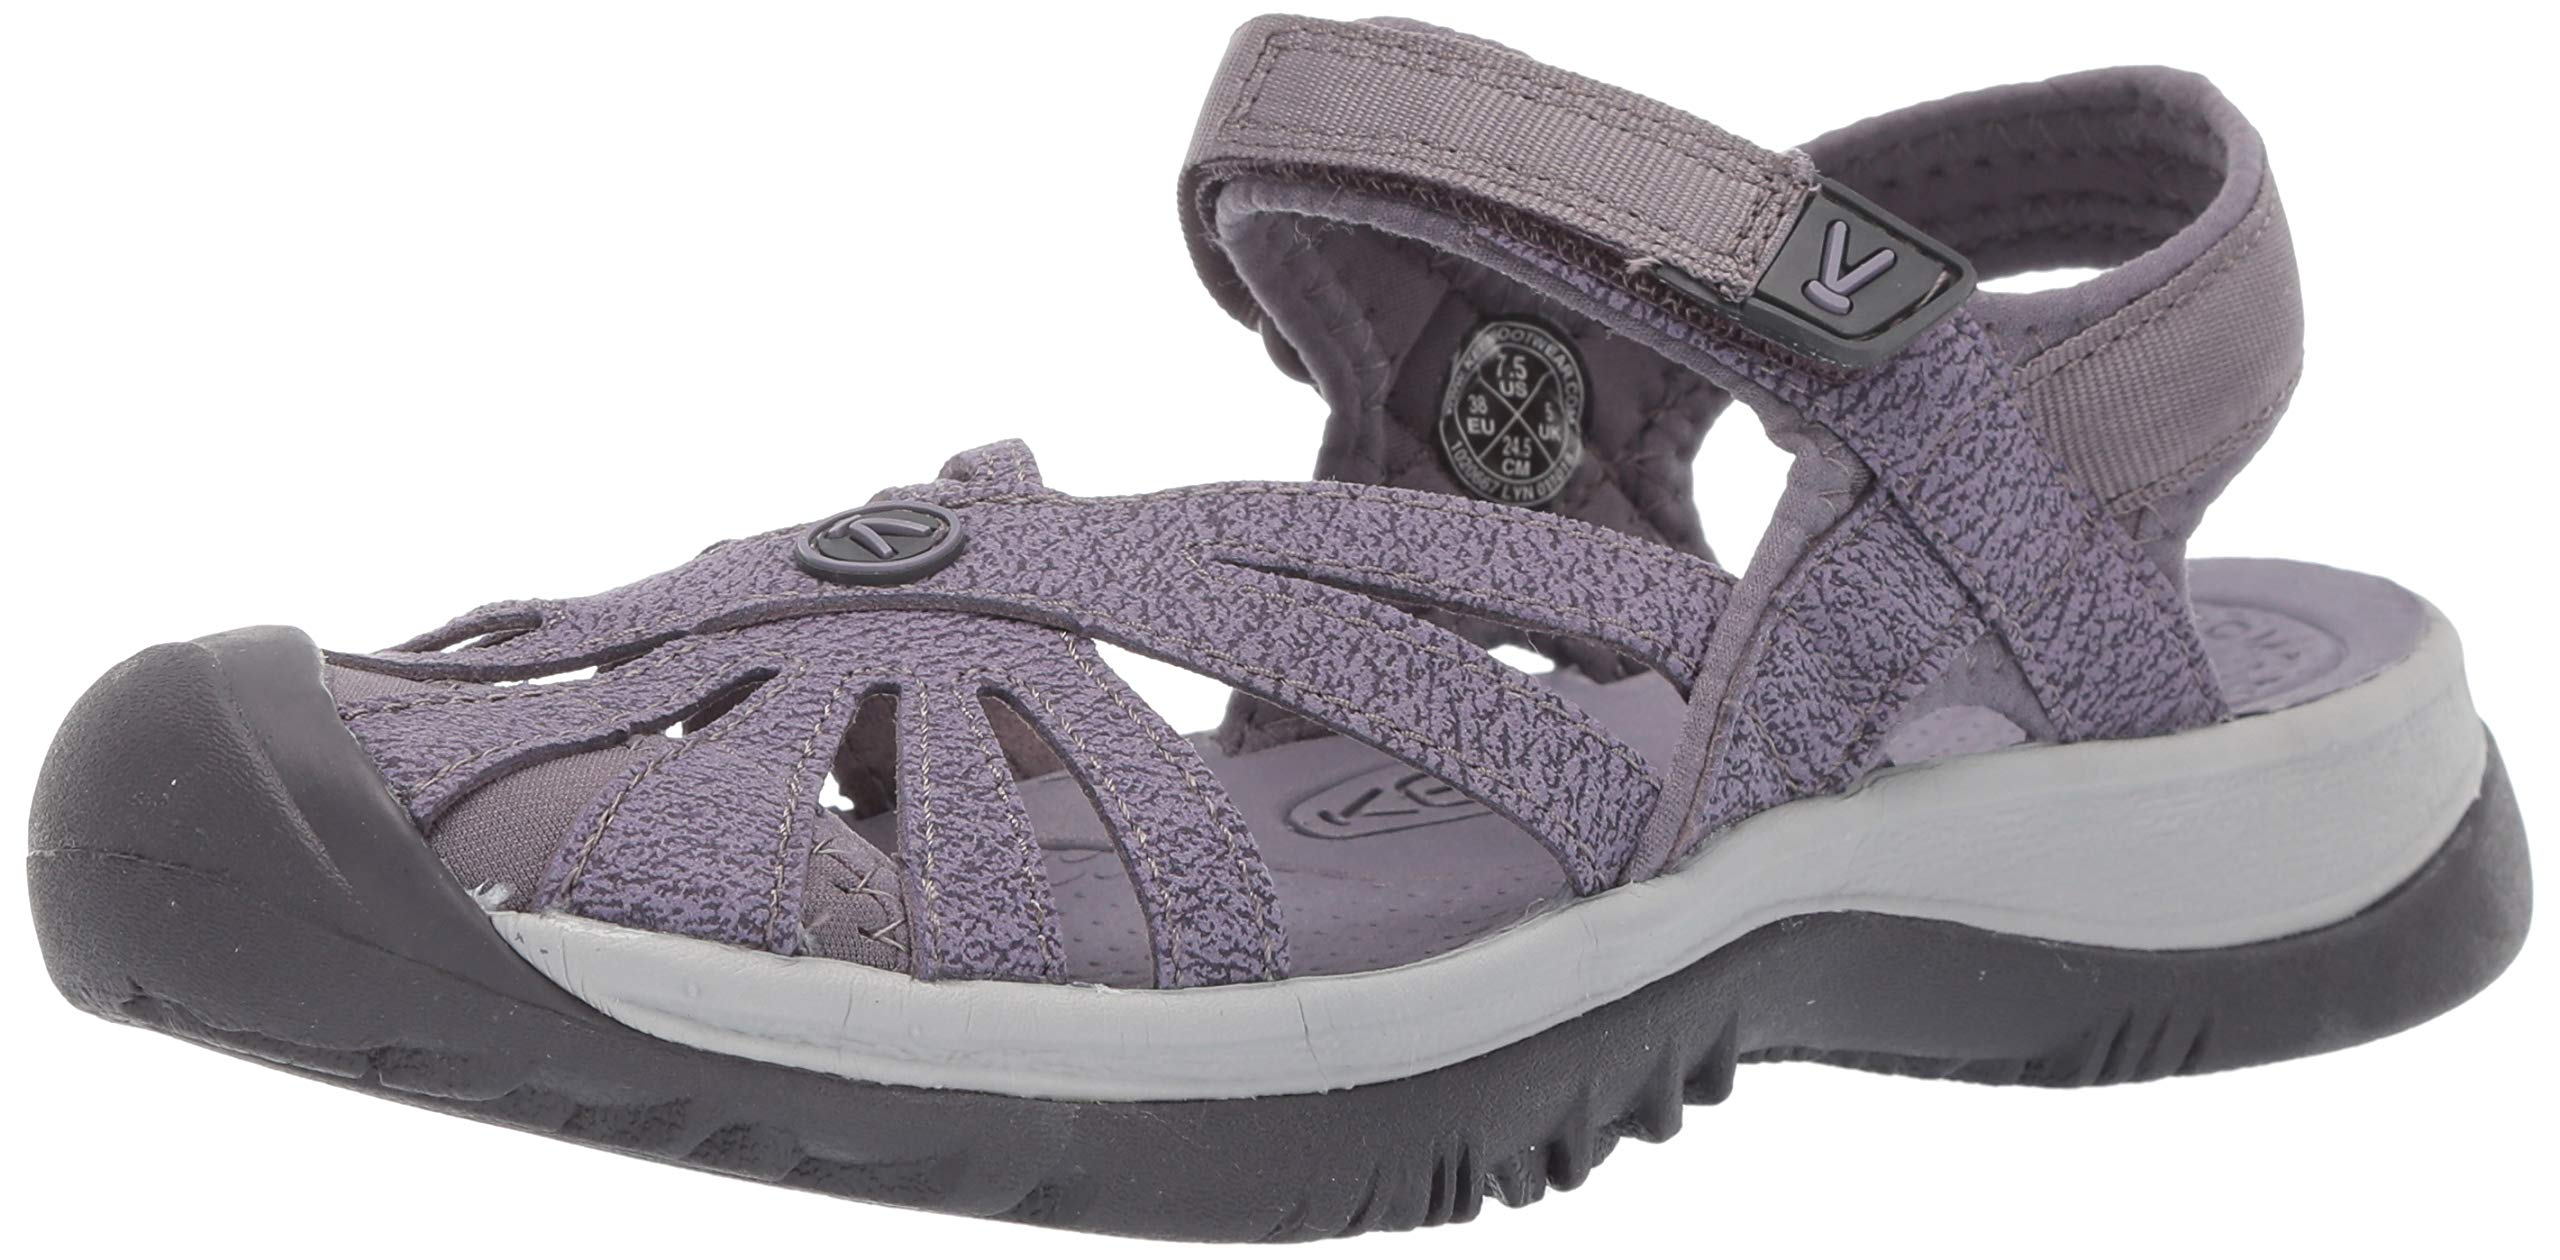 1758788036 Best Rated in Women's Sandals & Helpful Customer Reviews - Amazon.com